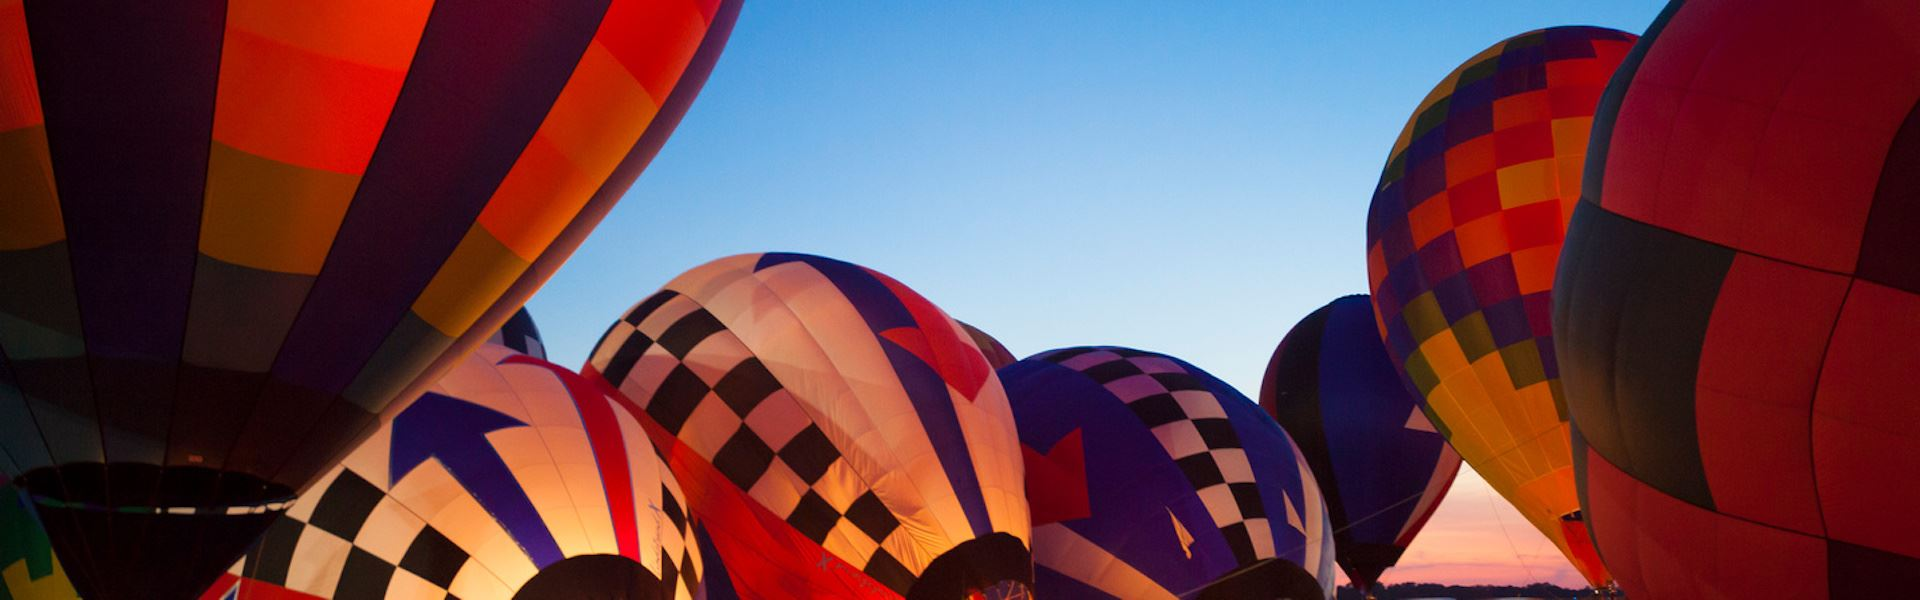 Colorful hot air balloons in Longview, TX